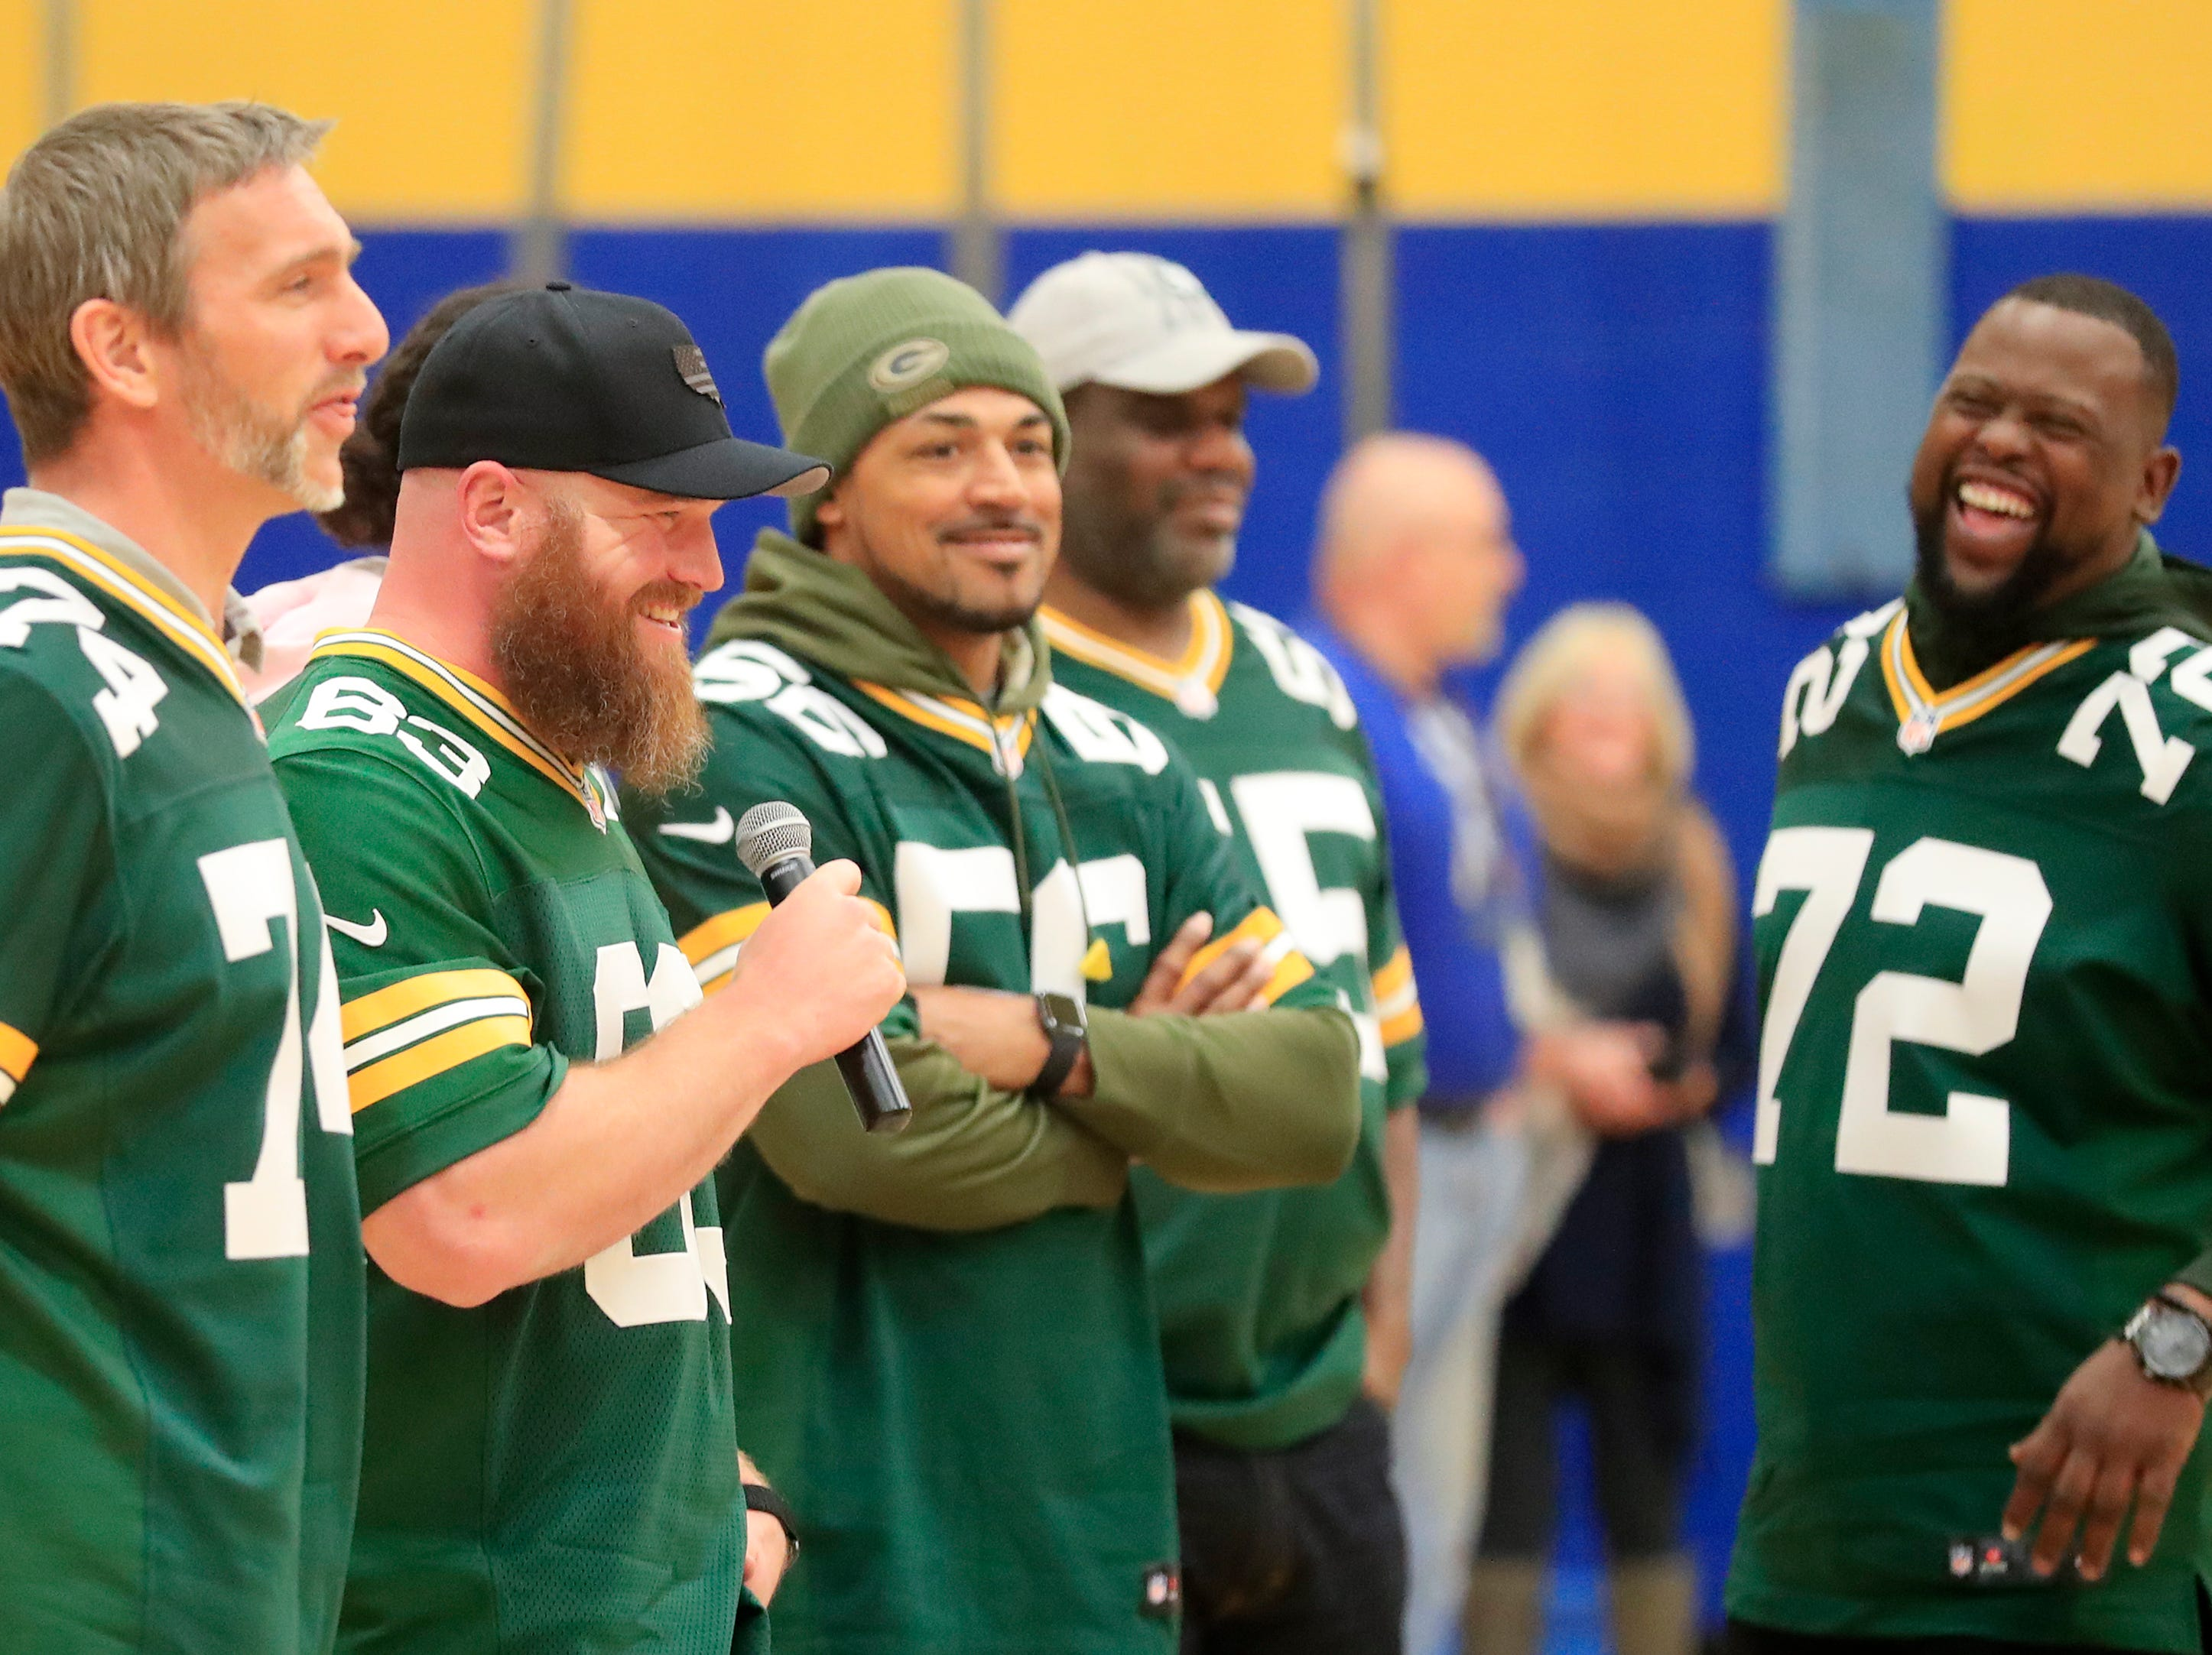 Former Green Bay Packers player Scott Wells talks during a stop on the Packers Tailgate Tour at Ben Franklin Junior High School on Tuesday, April 9, 2019 in Stevens Point, Wis.